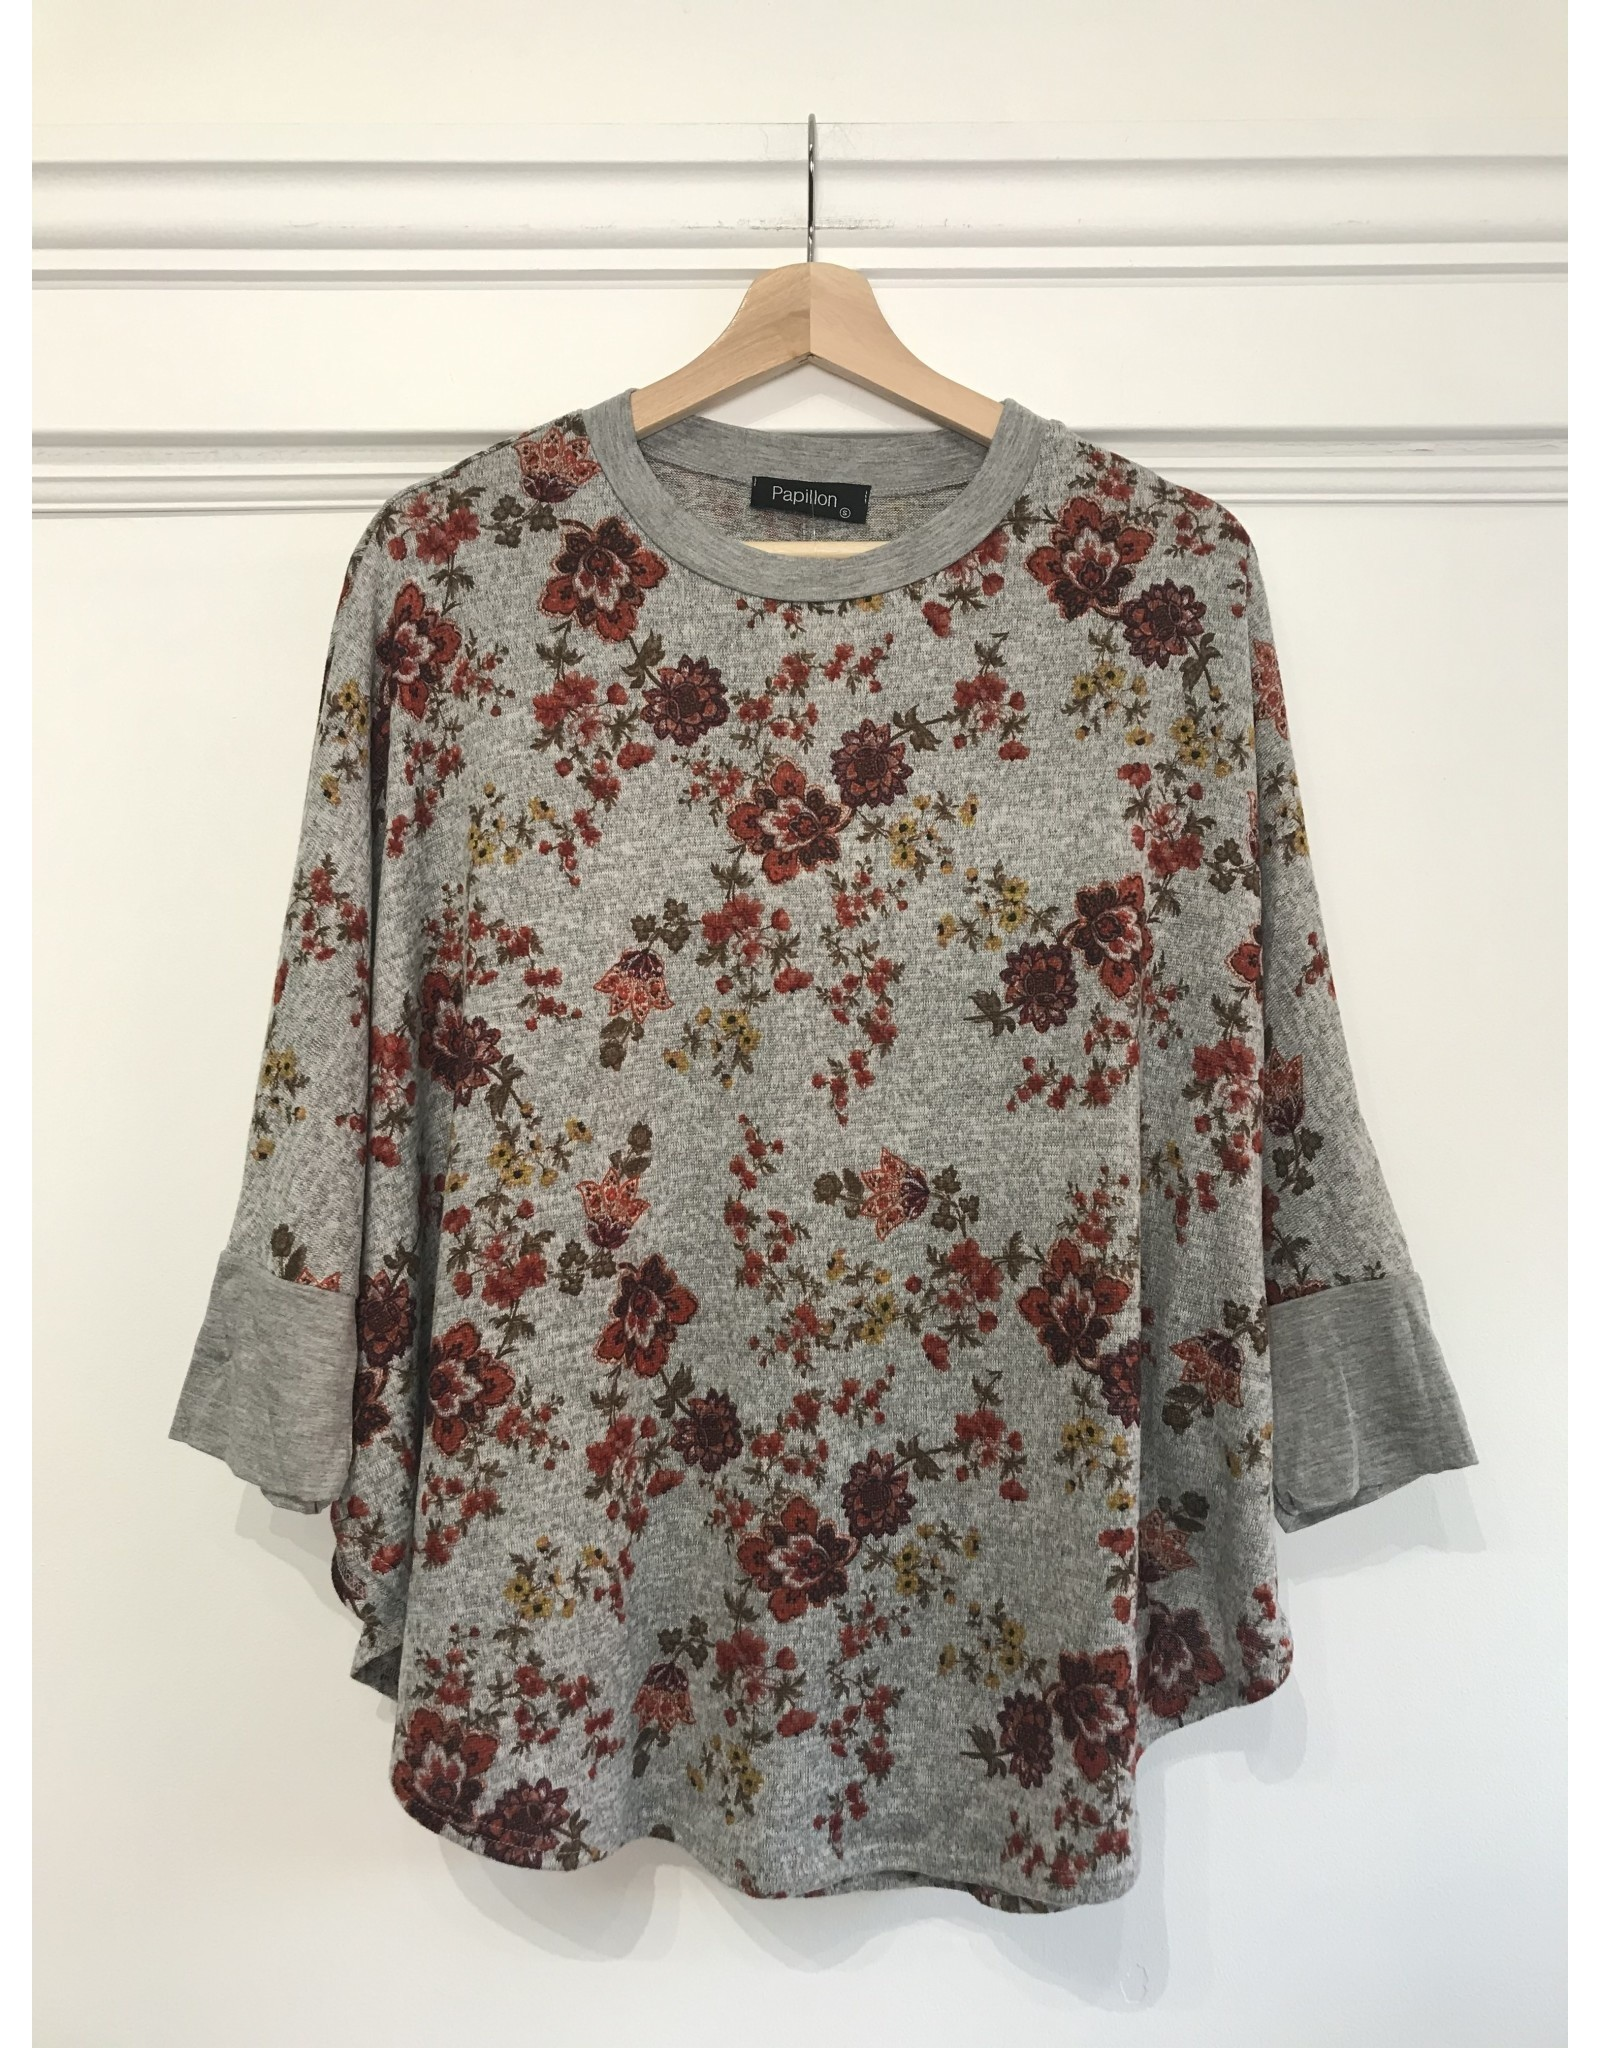 Papillon Papillon - Floral top with bell sleeves